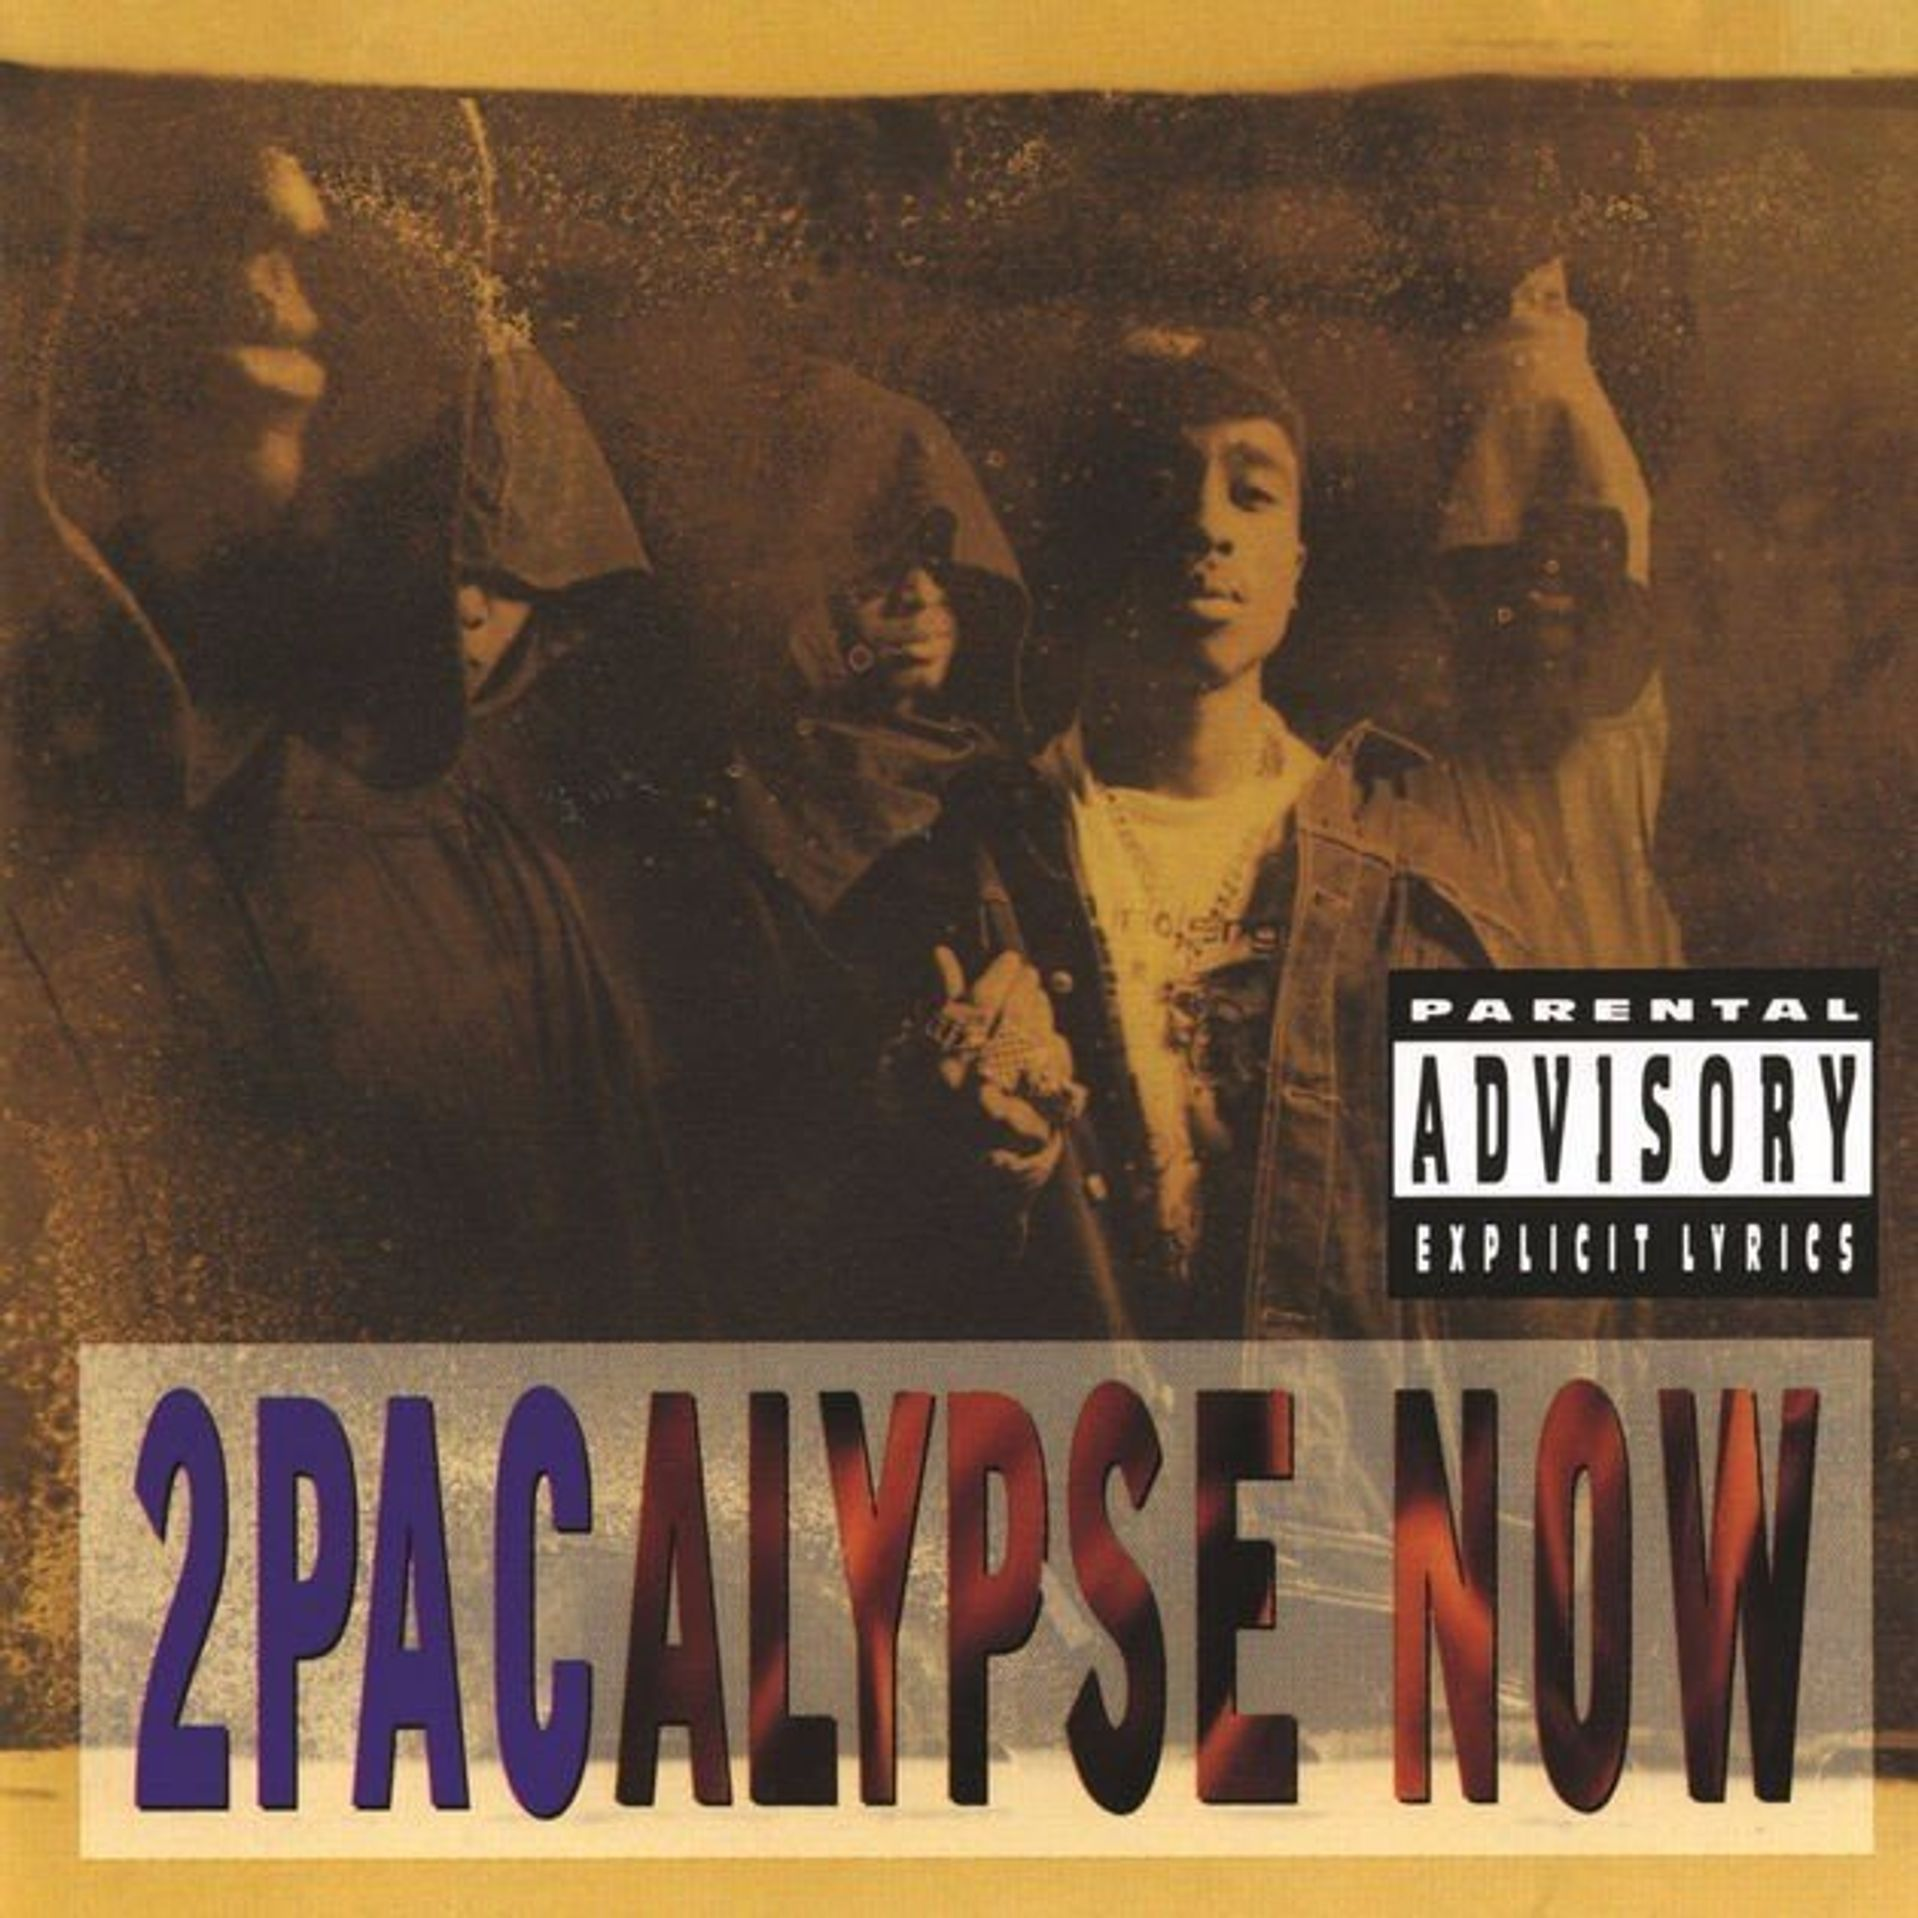 Album Title: 2Pacalypse Now by: Tupac